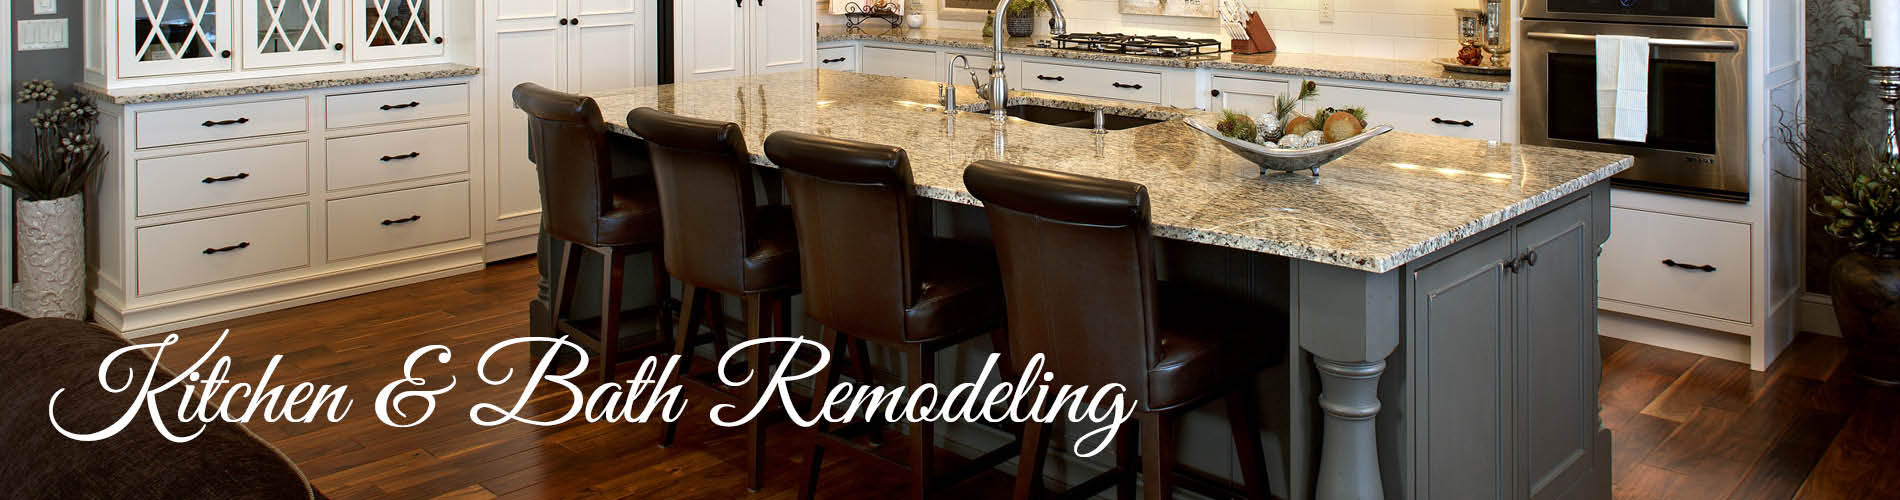 Kitchen & Bath remodeling at Granite Mountain.